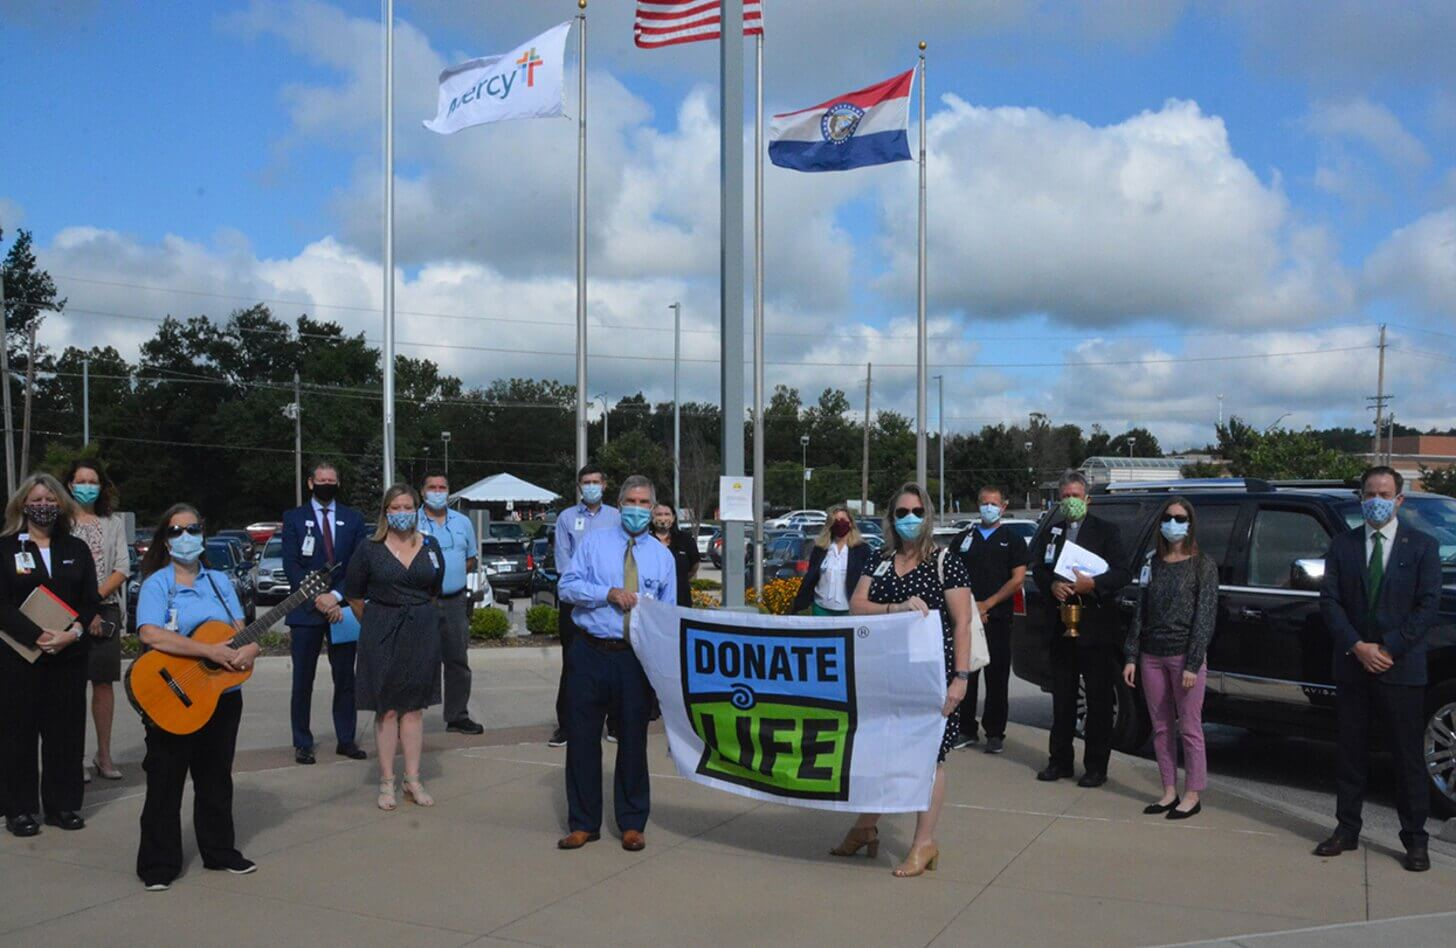 Mercy Hospital Jefferson held a flag raising ceremony, adding the Donate Life flag.